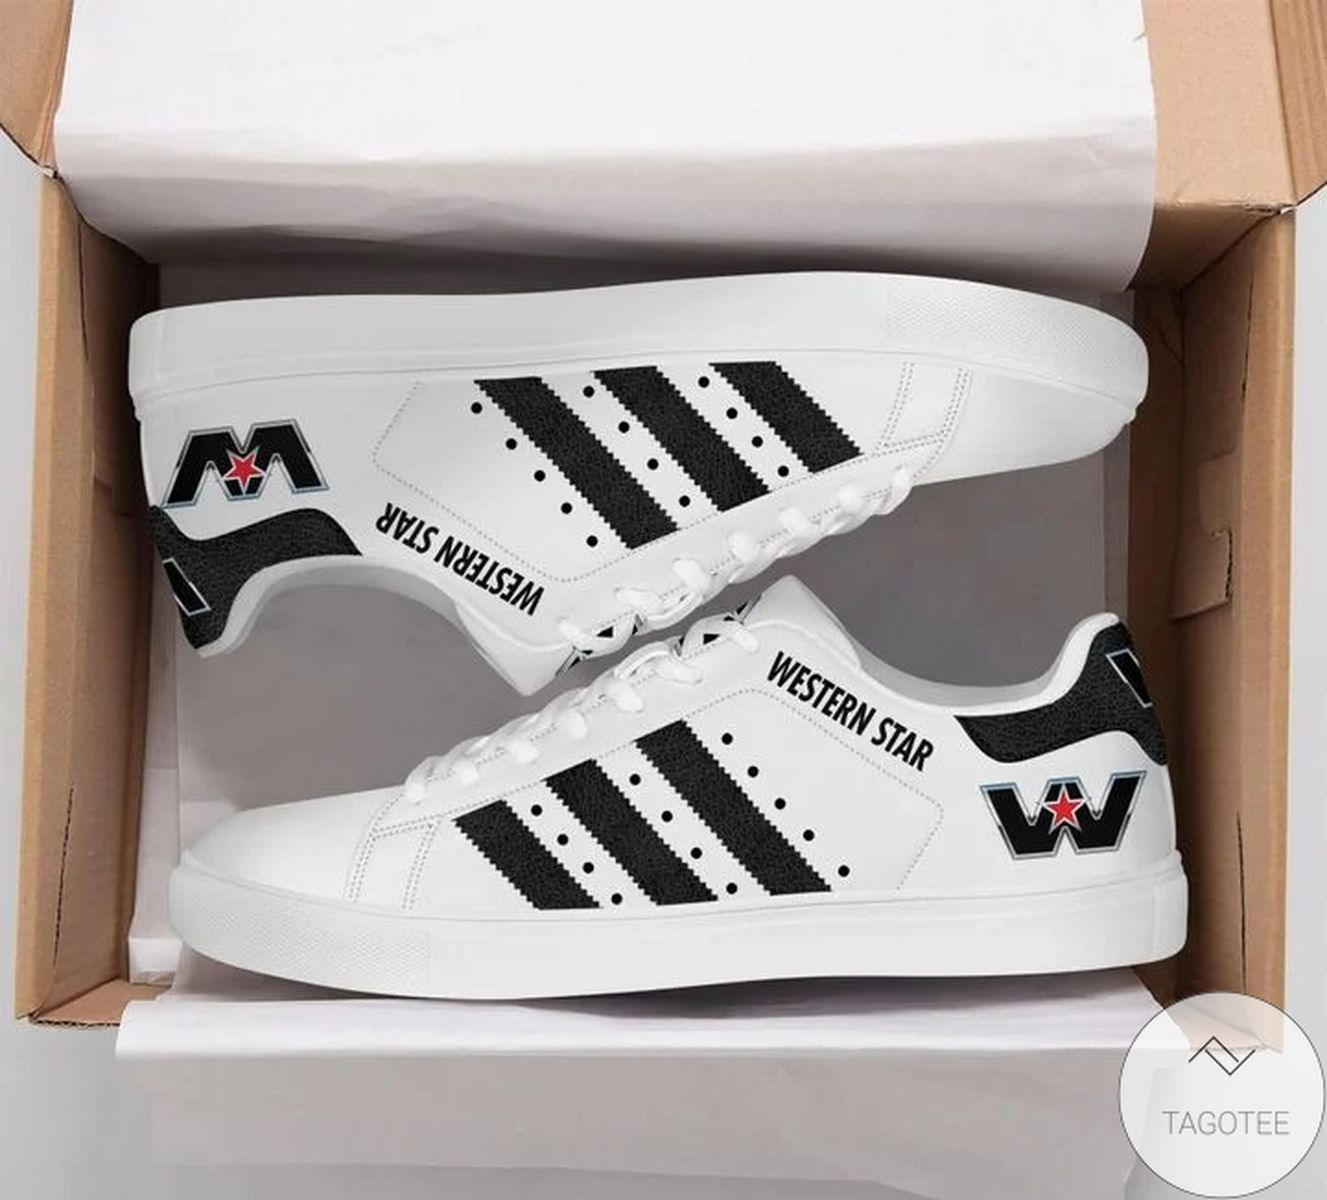 Best Shop Western Star Stan Smith Shoes